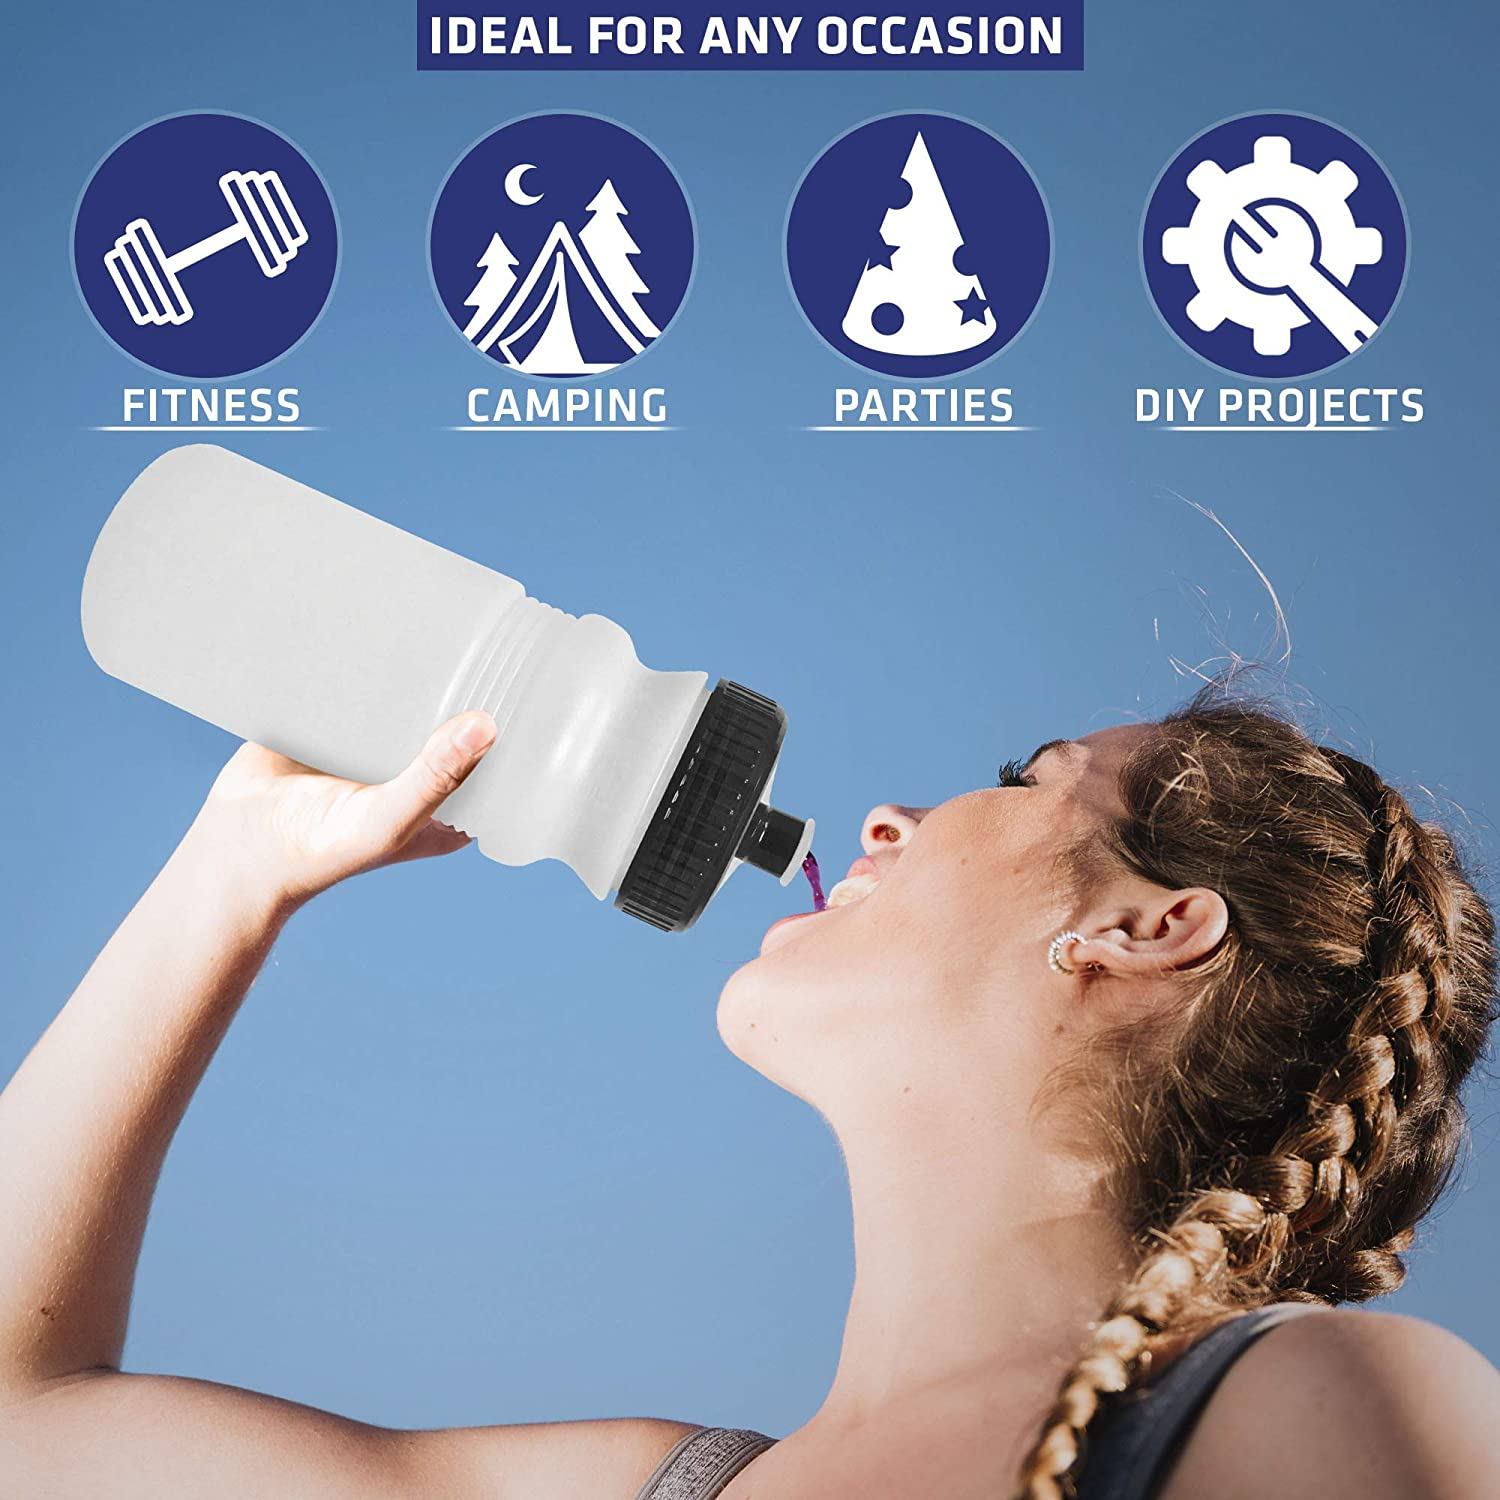 6 Pack Pull Top Leakproof Drink Spout Fundraises or Fitness Blank DIY Customization for Business Branding Reusable No BPA Plastic CSBD 20 oz Sports Water Bottles